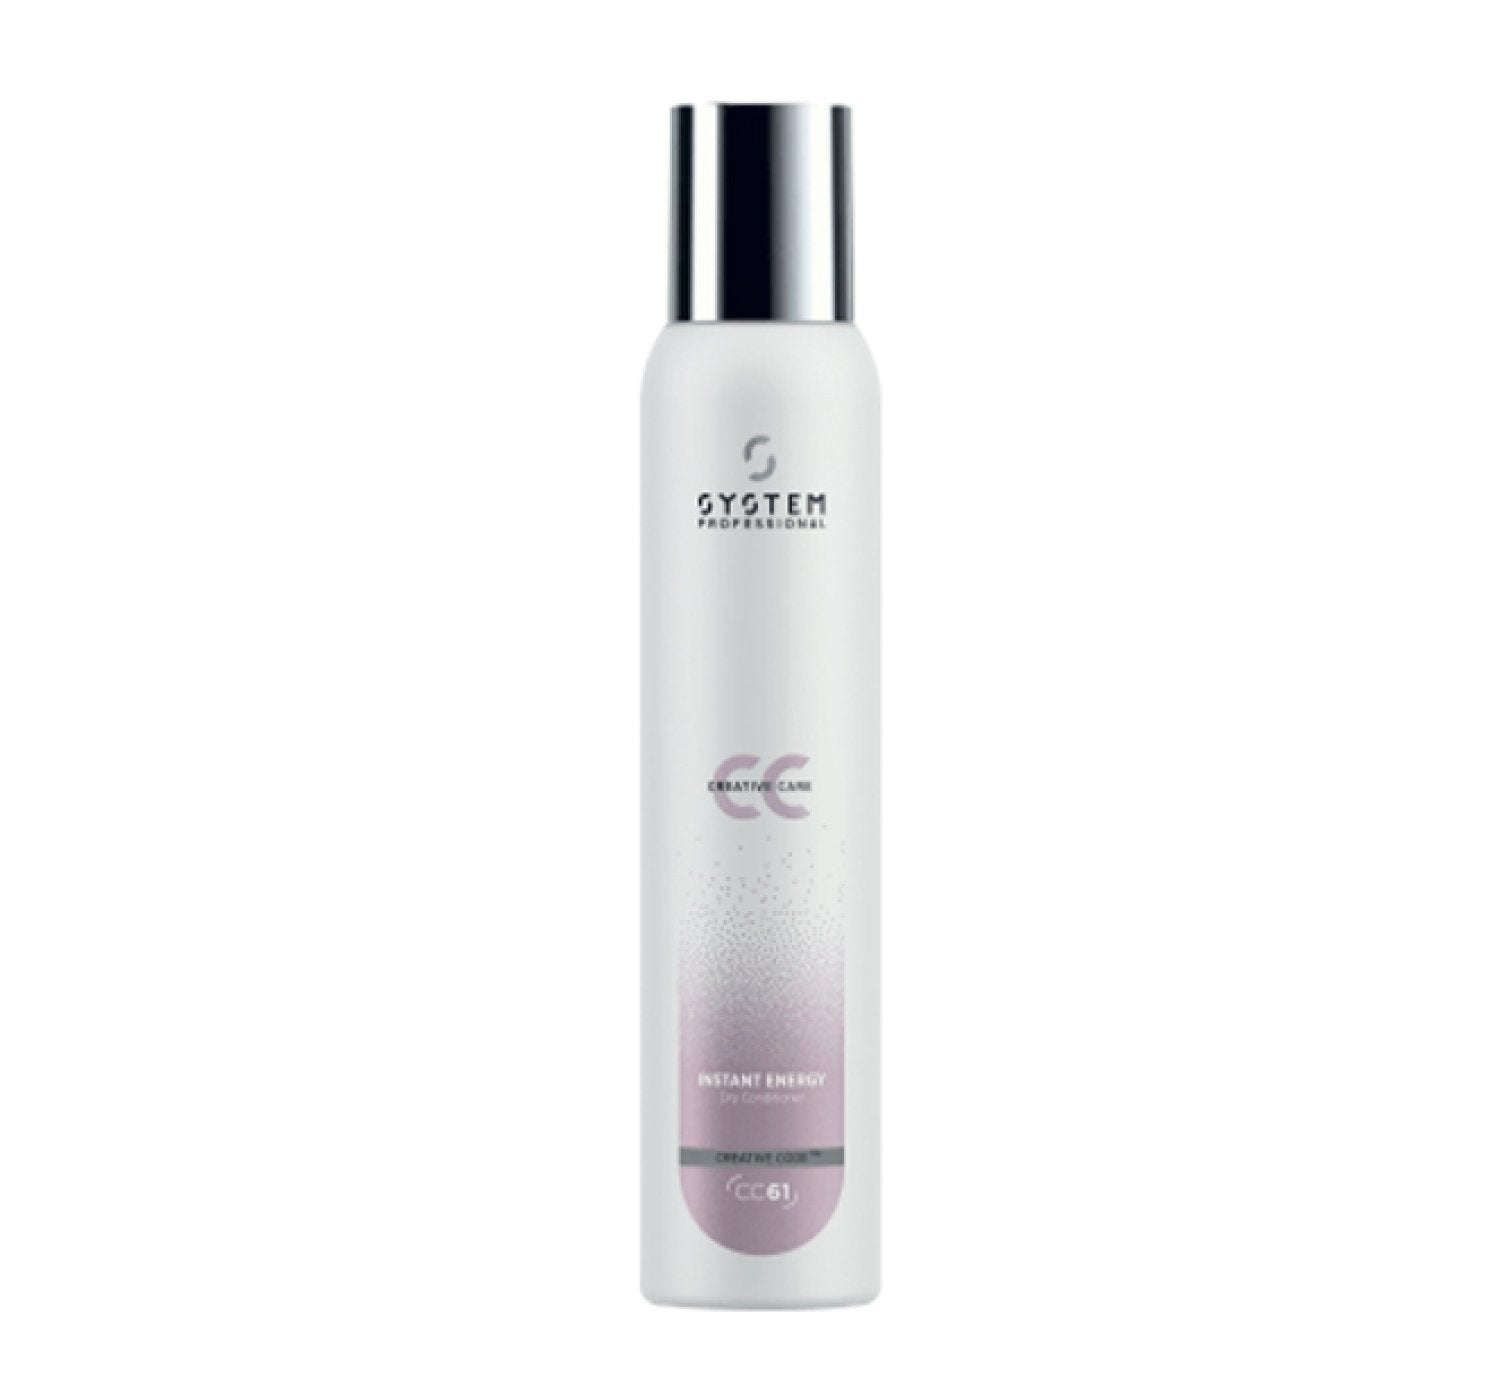 System Professional Styling Instant Energy Dry Conditioner 200mL